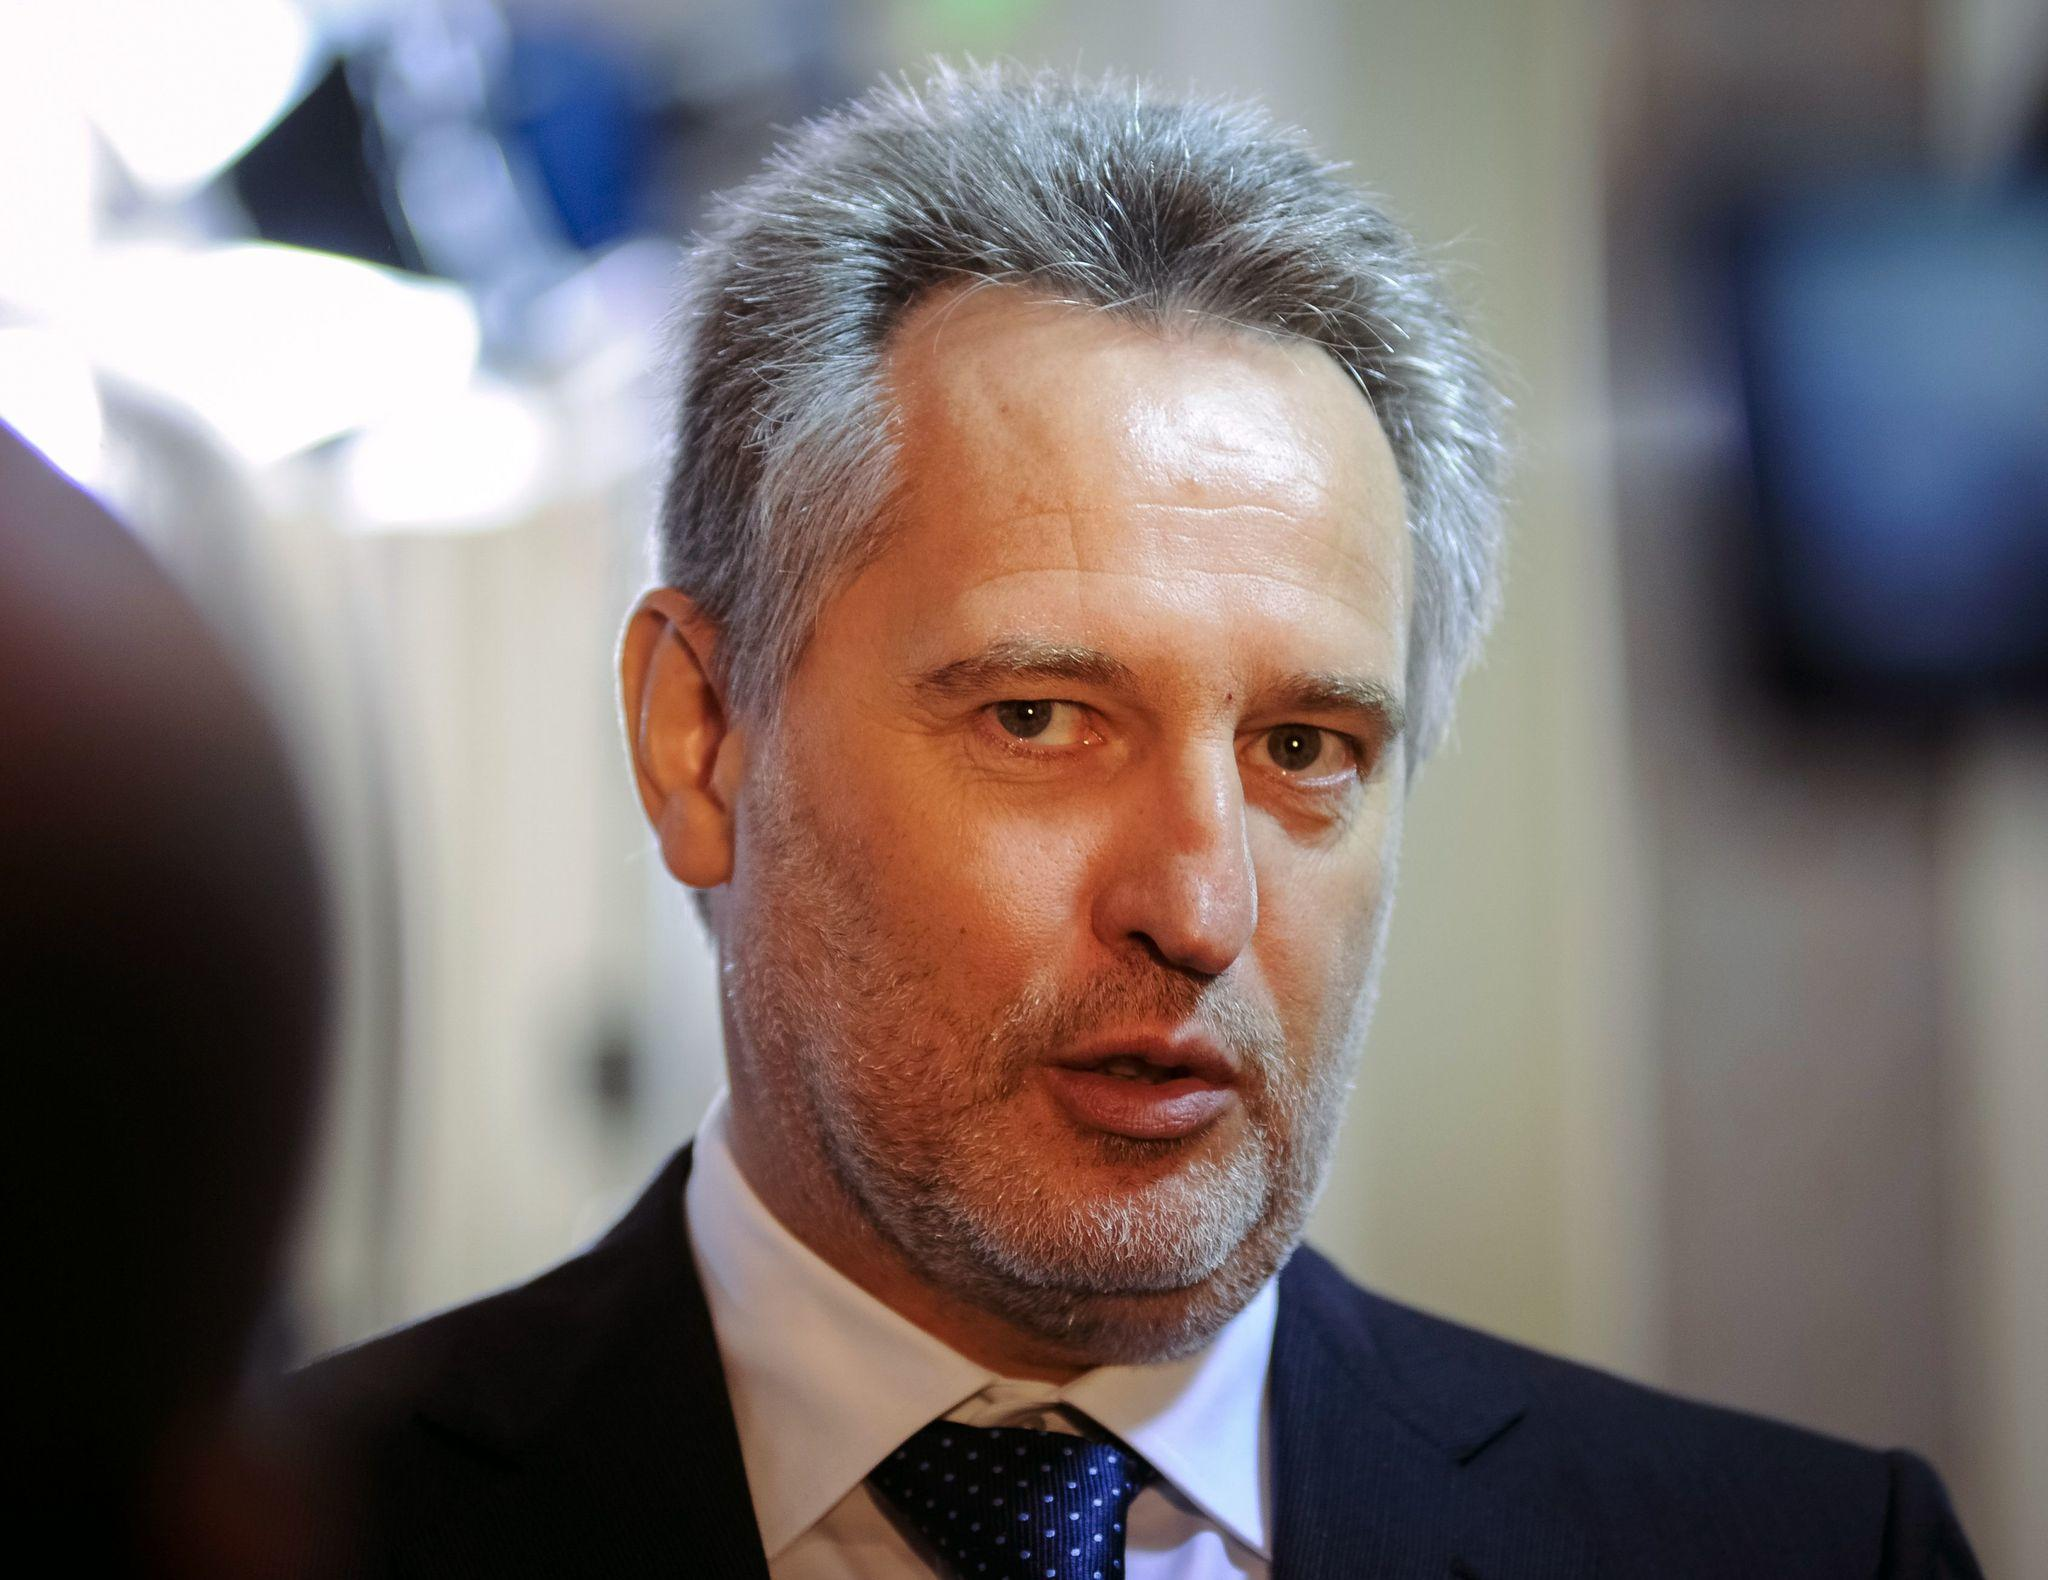 Billionaire Ukrainian industrialist Dmytro Firtash and five other foreign nationals have been indicted by federal prosecutors in Chicago.